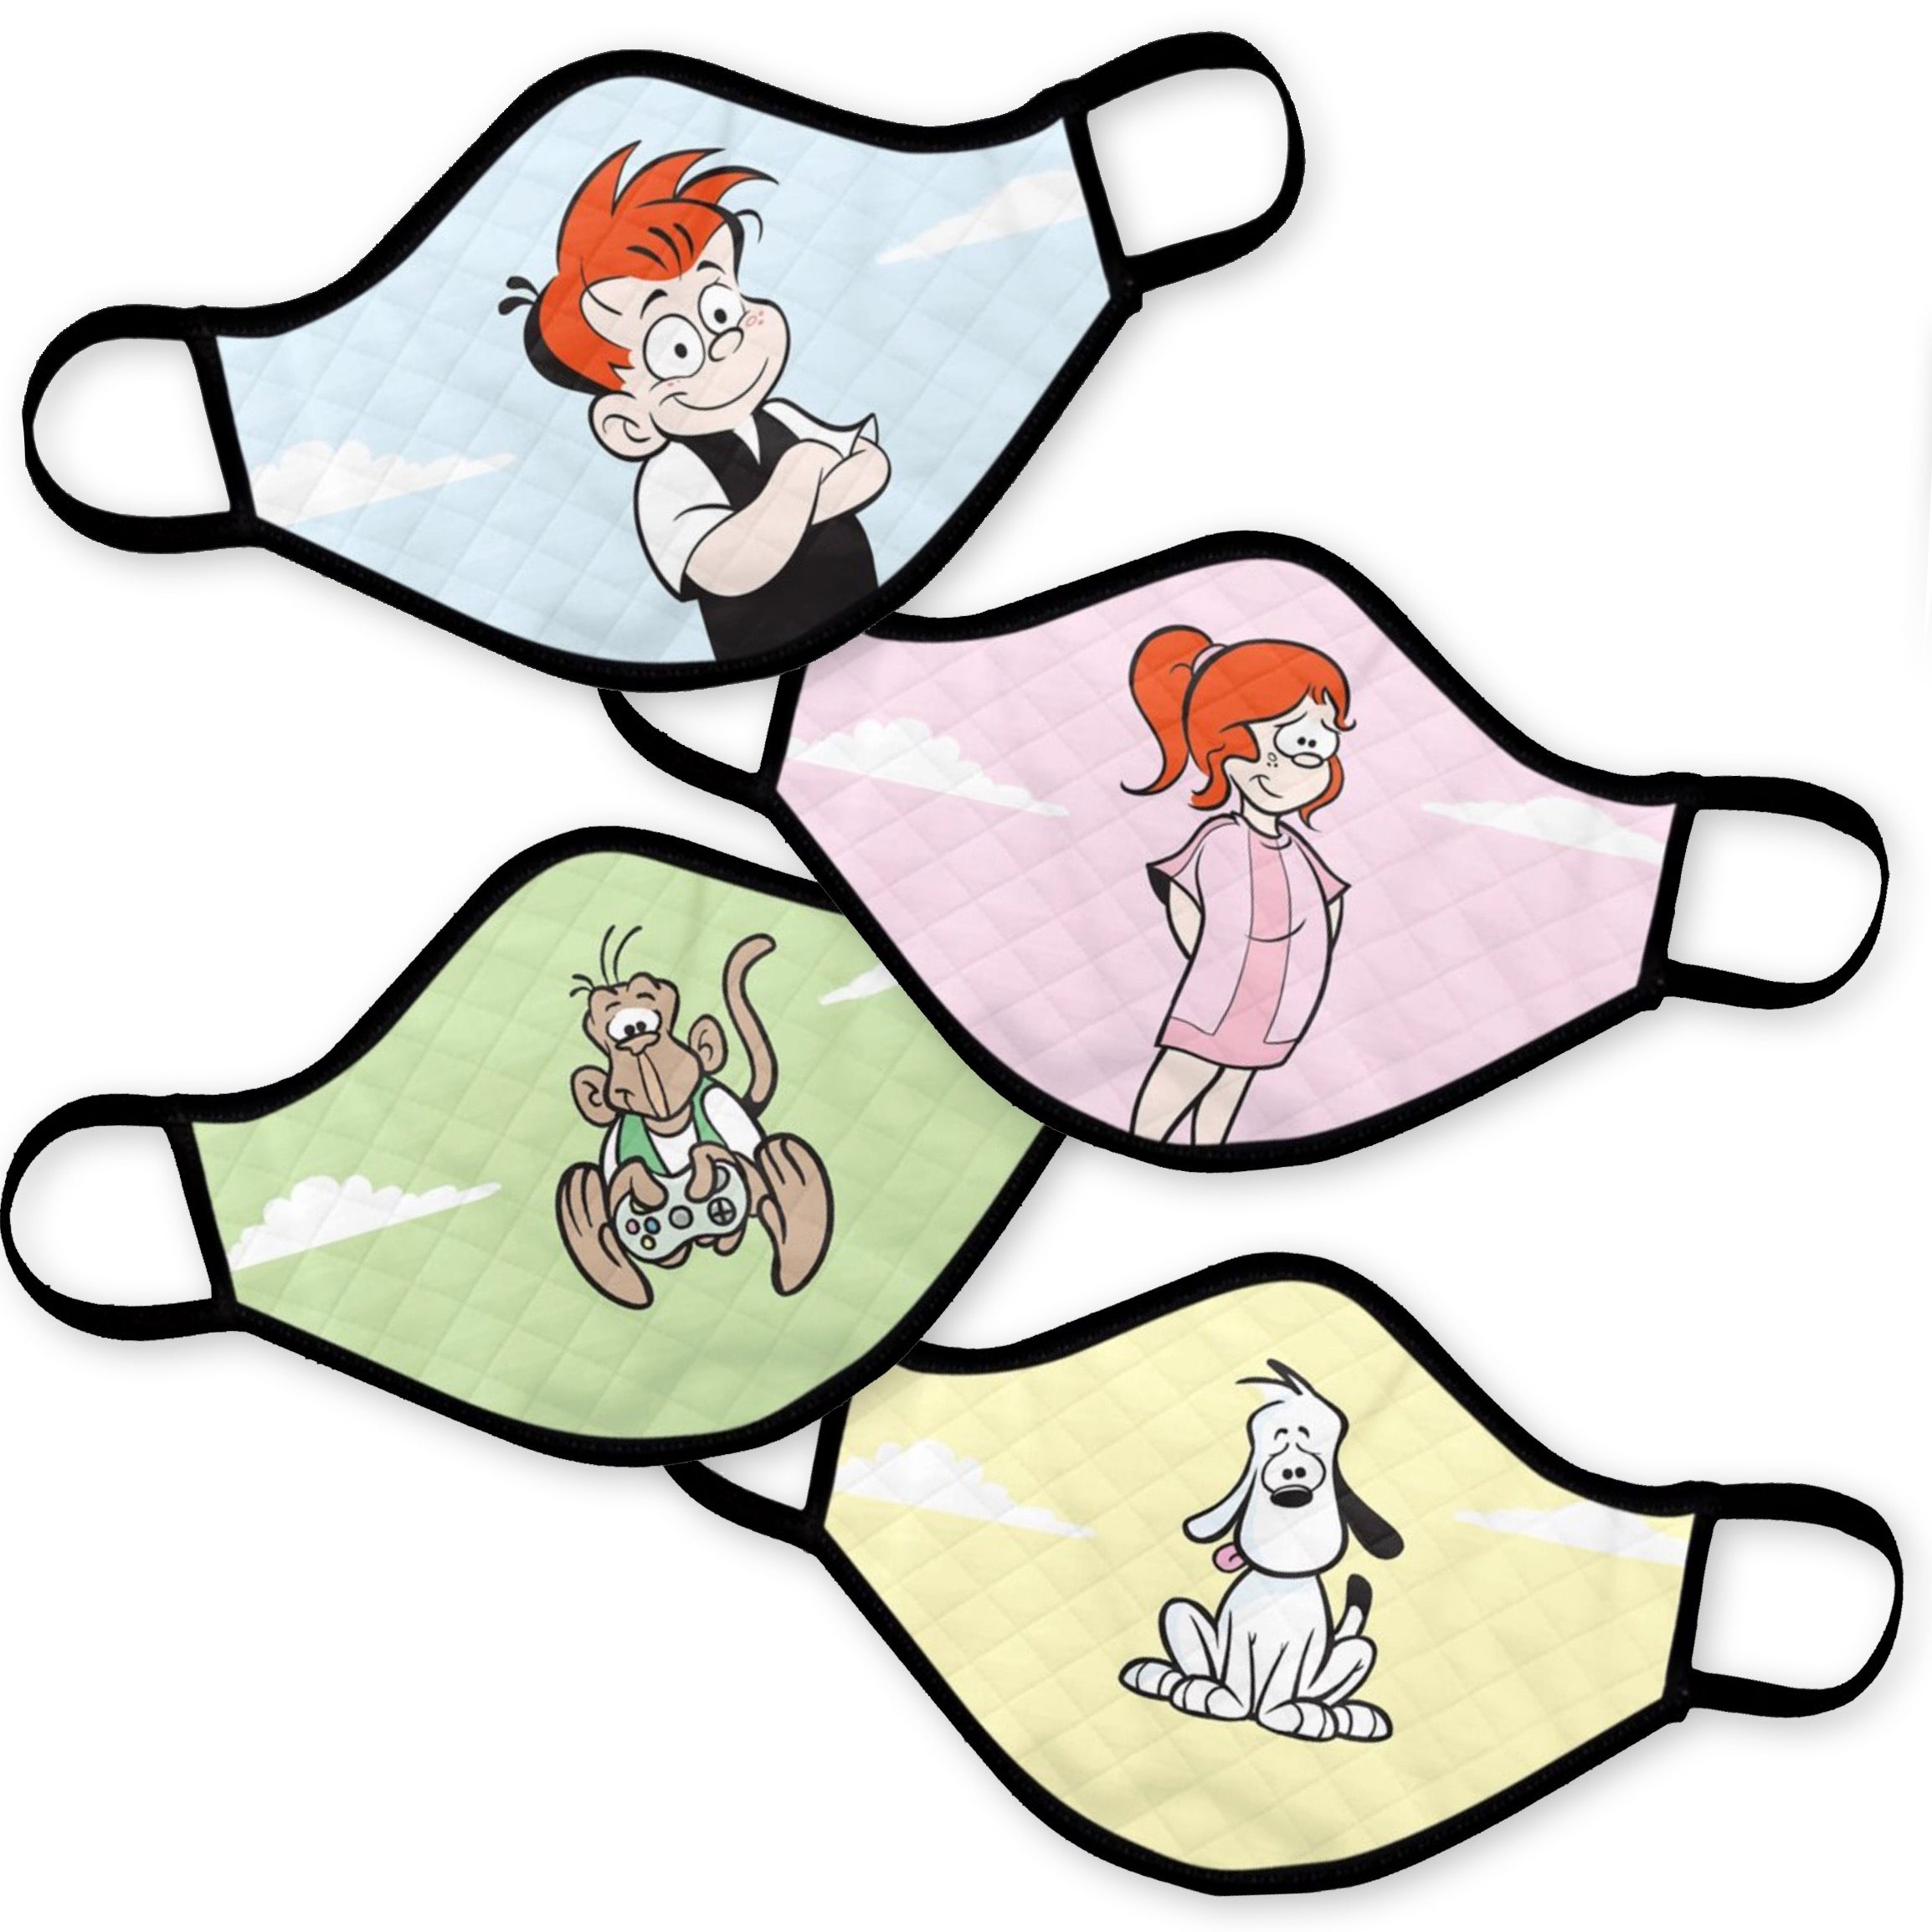 New! Ginger Meggs Masks: (4-pack) Ginger, Minnie, Tony & Mike!